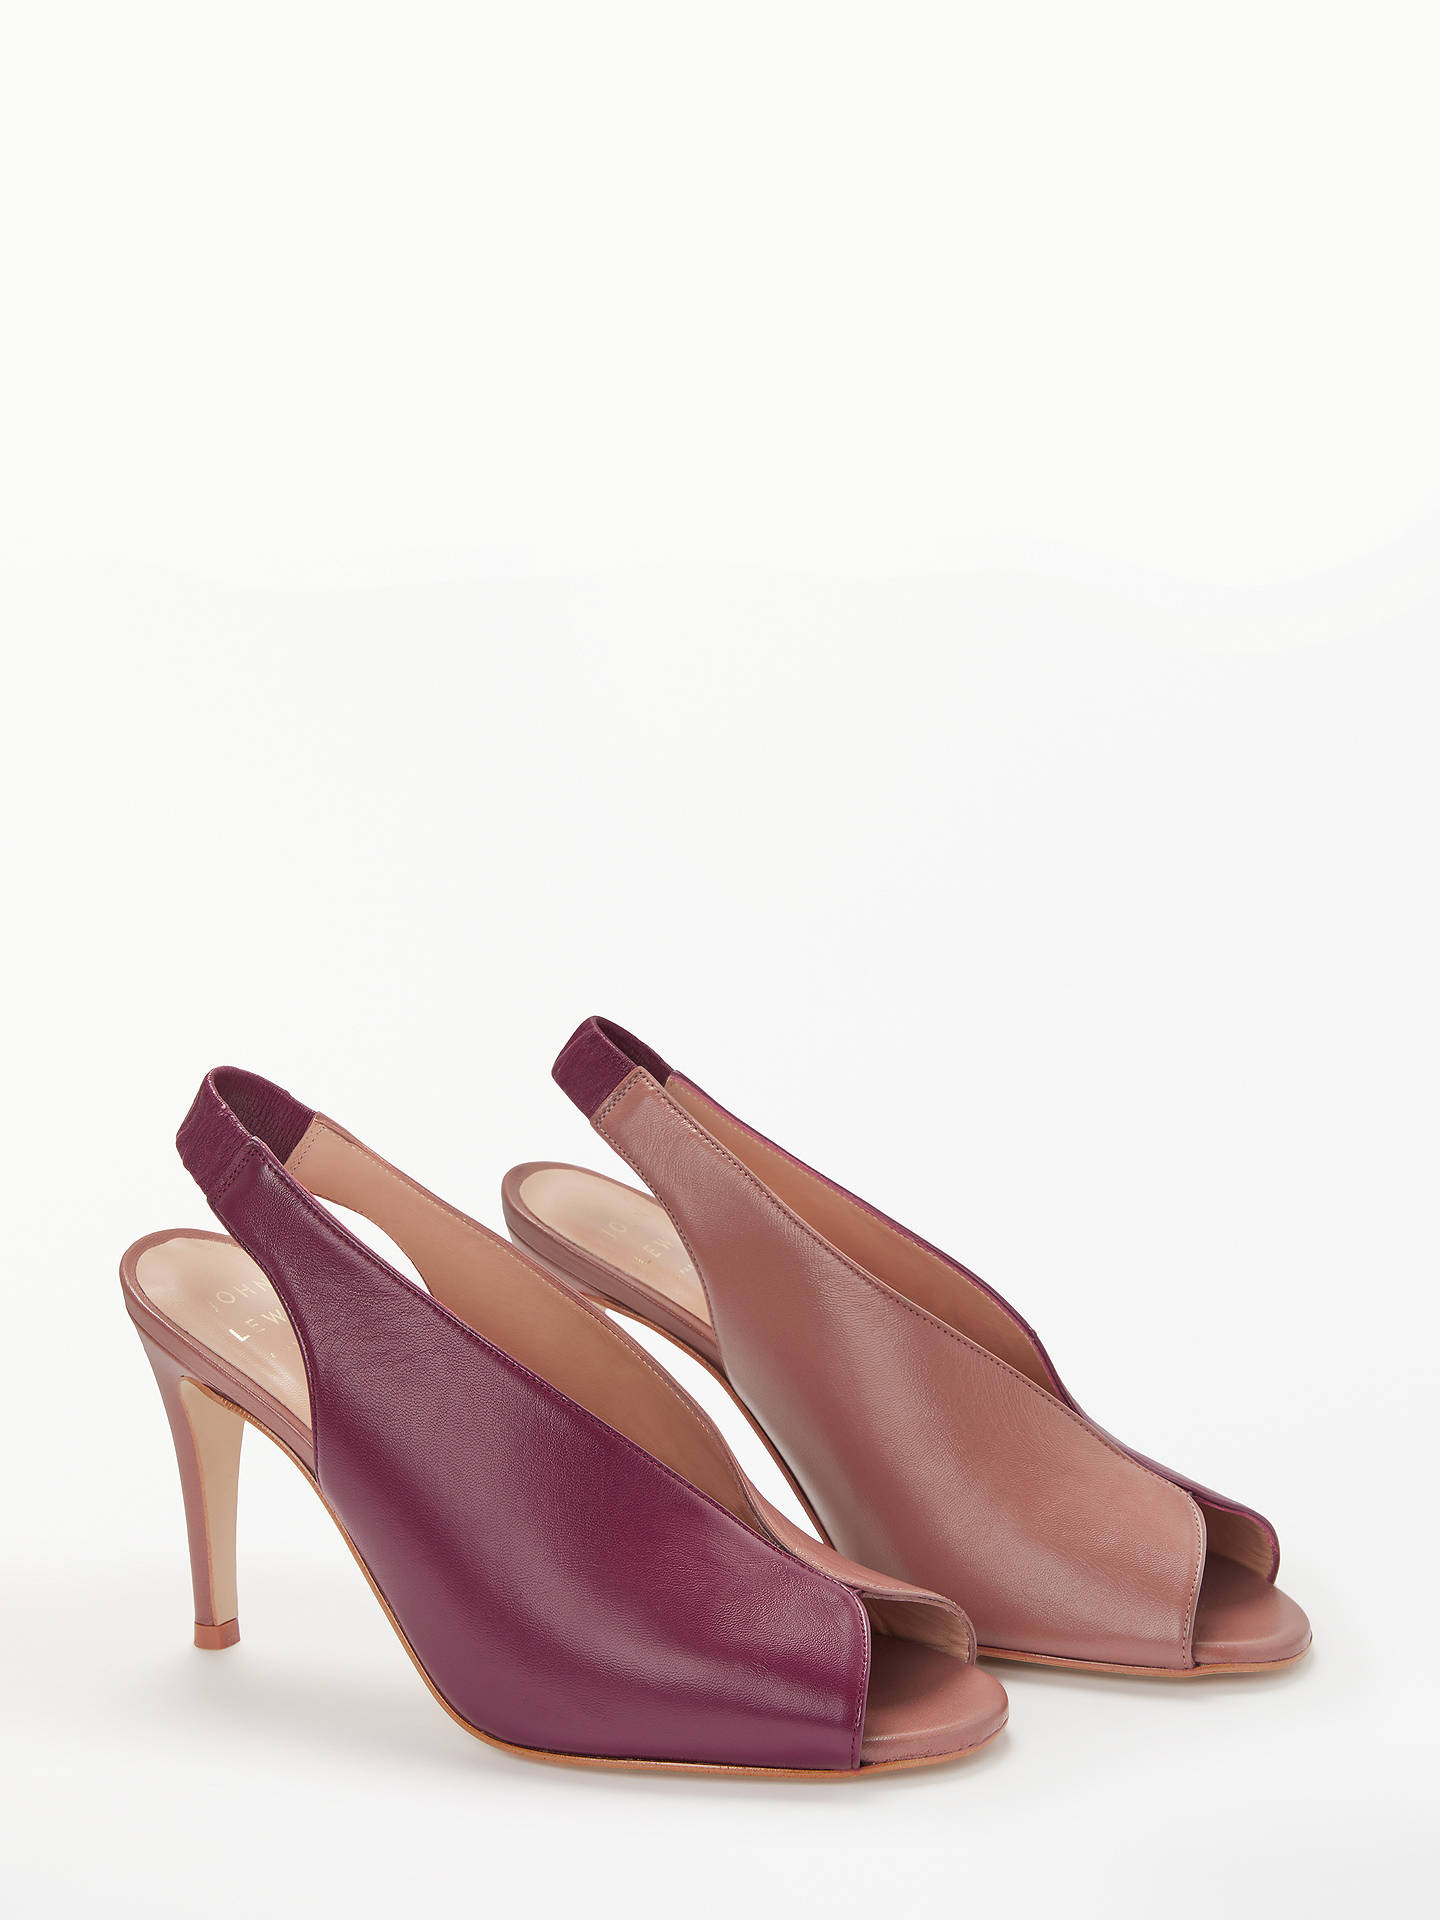 BuyJohn Lewis & Partners Bella Slingback Court Shoes, Multi Leather, 5 Online at johnlewis.com